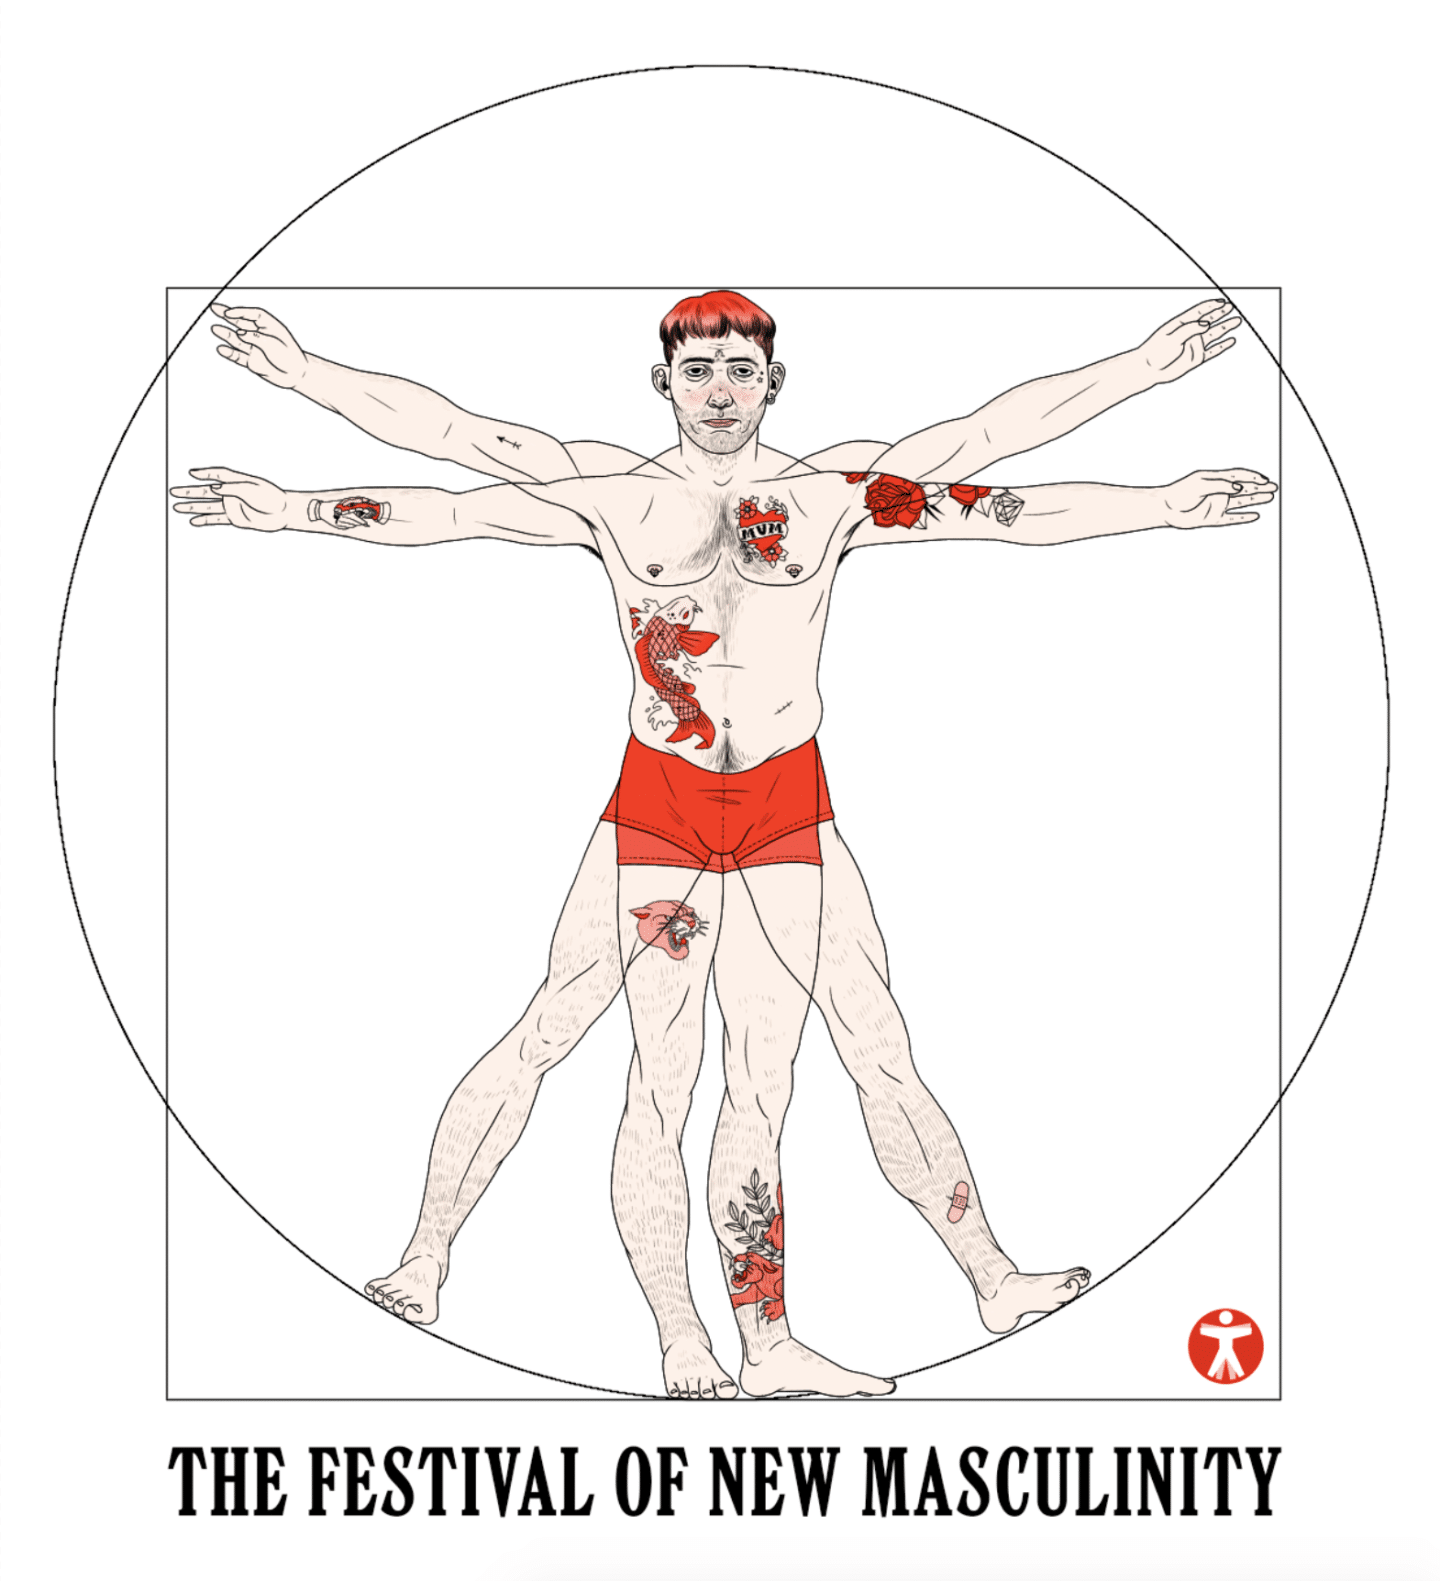 The Festival of New Masculinity